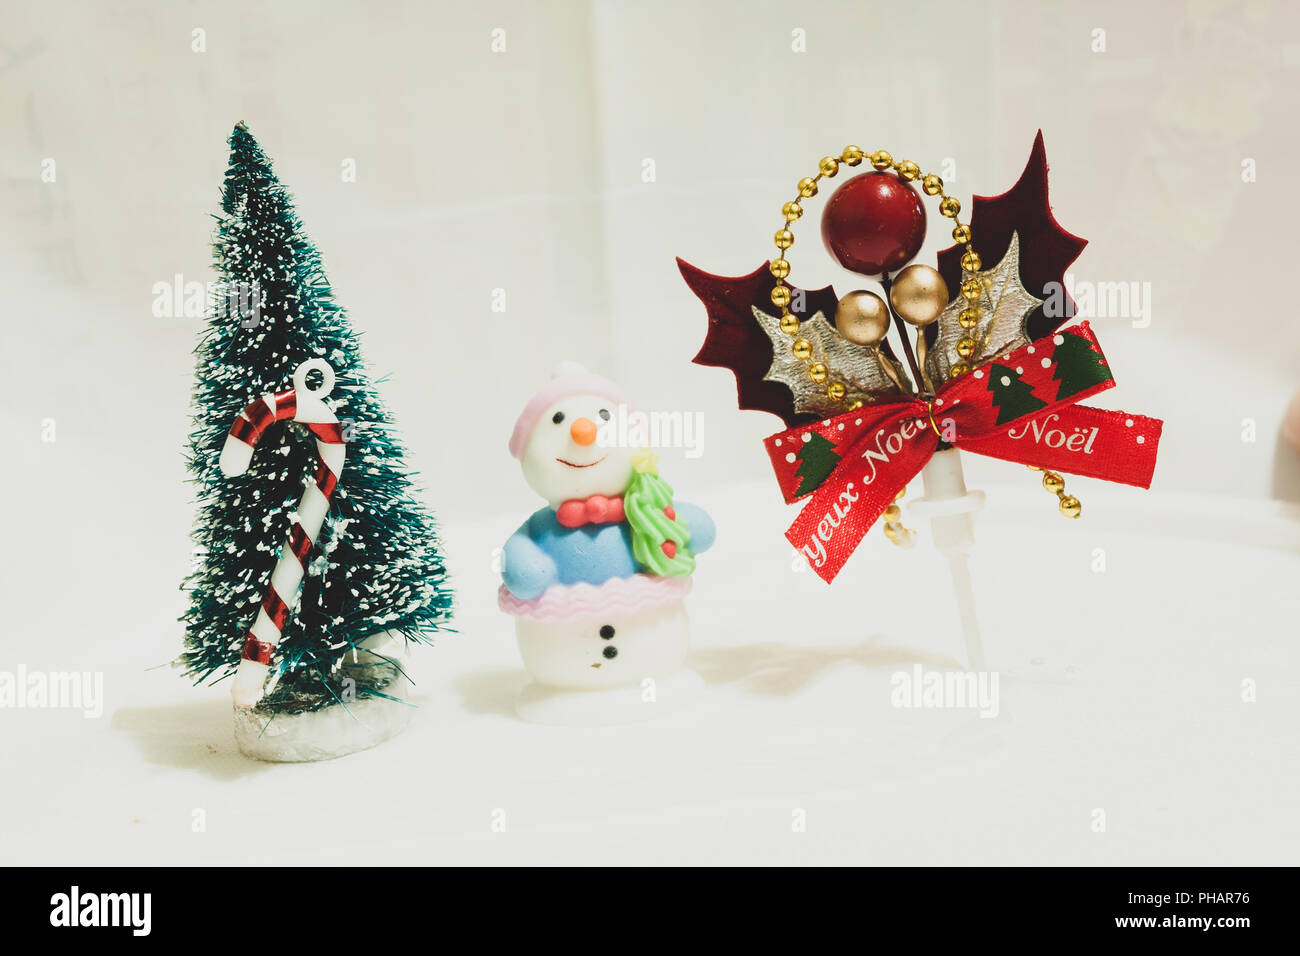 Christmas cake toppers, mini ornaments, holiday tree, cute snowman;  berries, leaves and bow wreath. Vintage toned